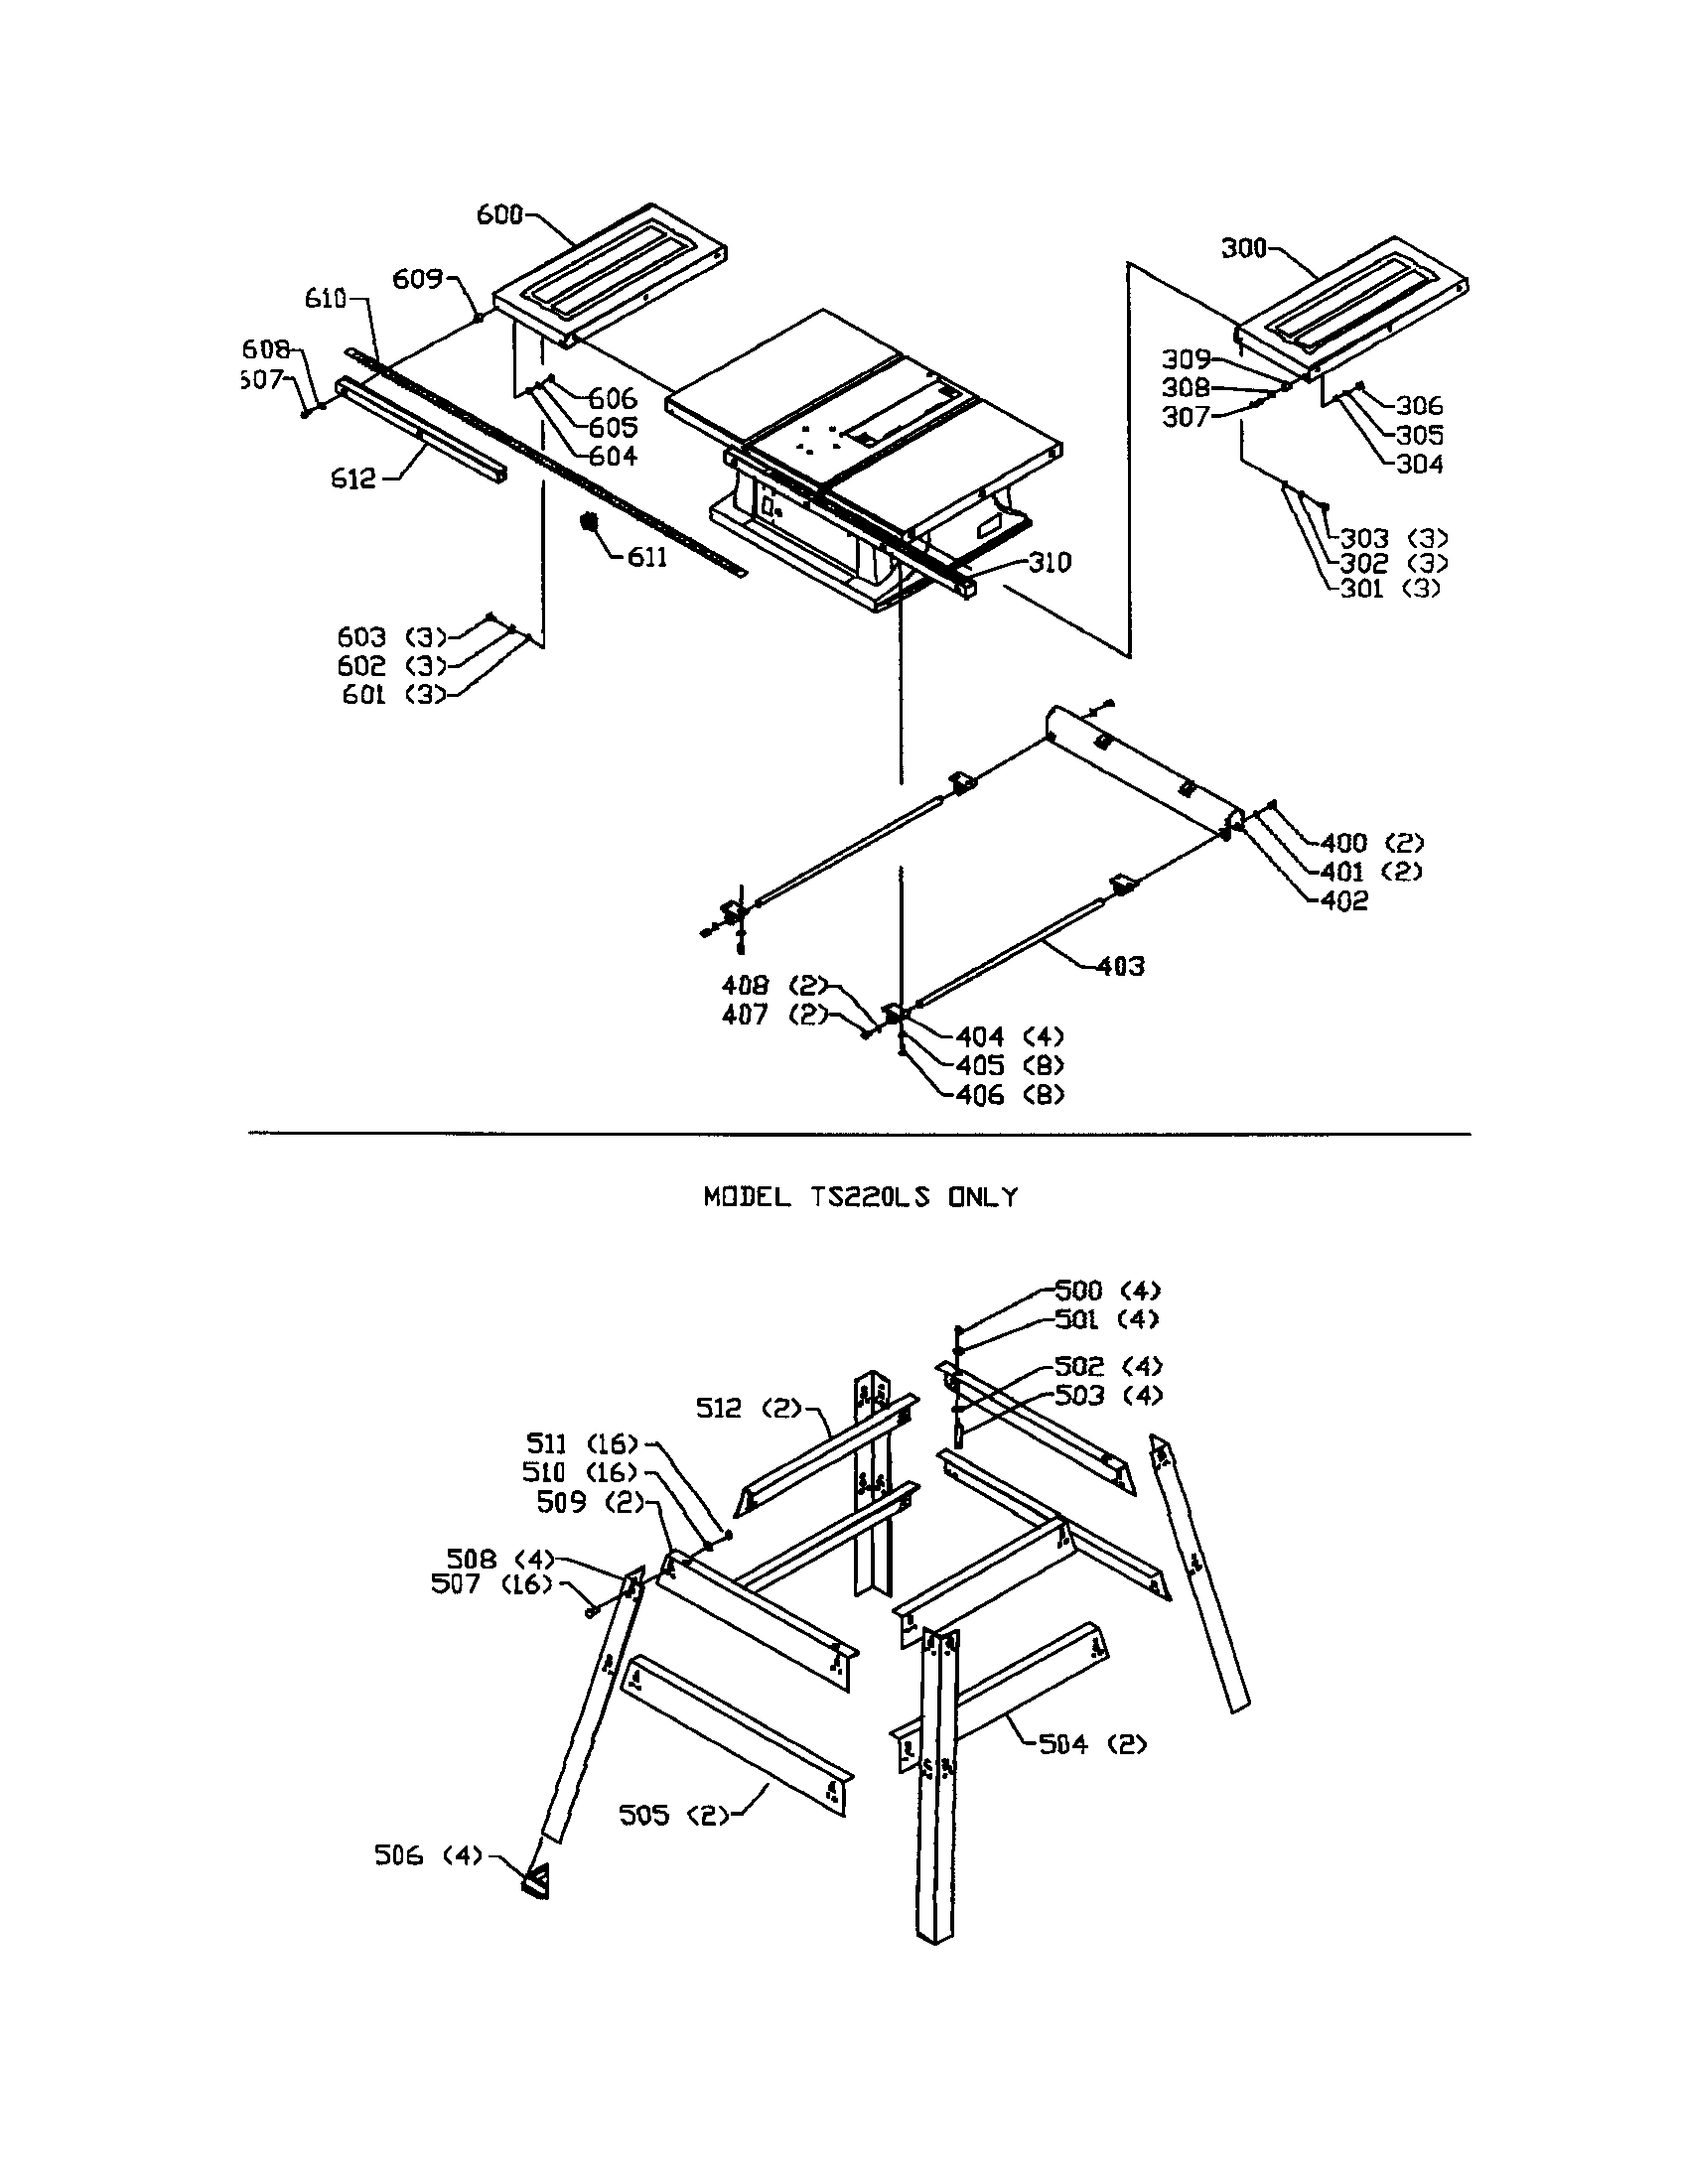 EXTENSION WING/STAND Diagram & Parts List for Model